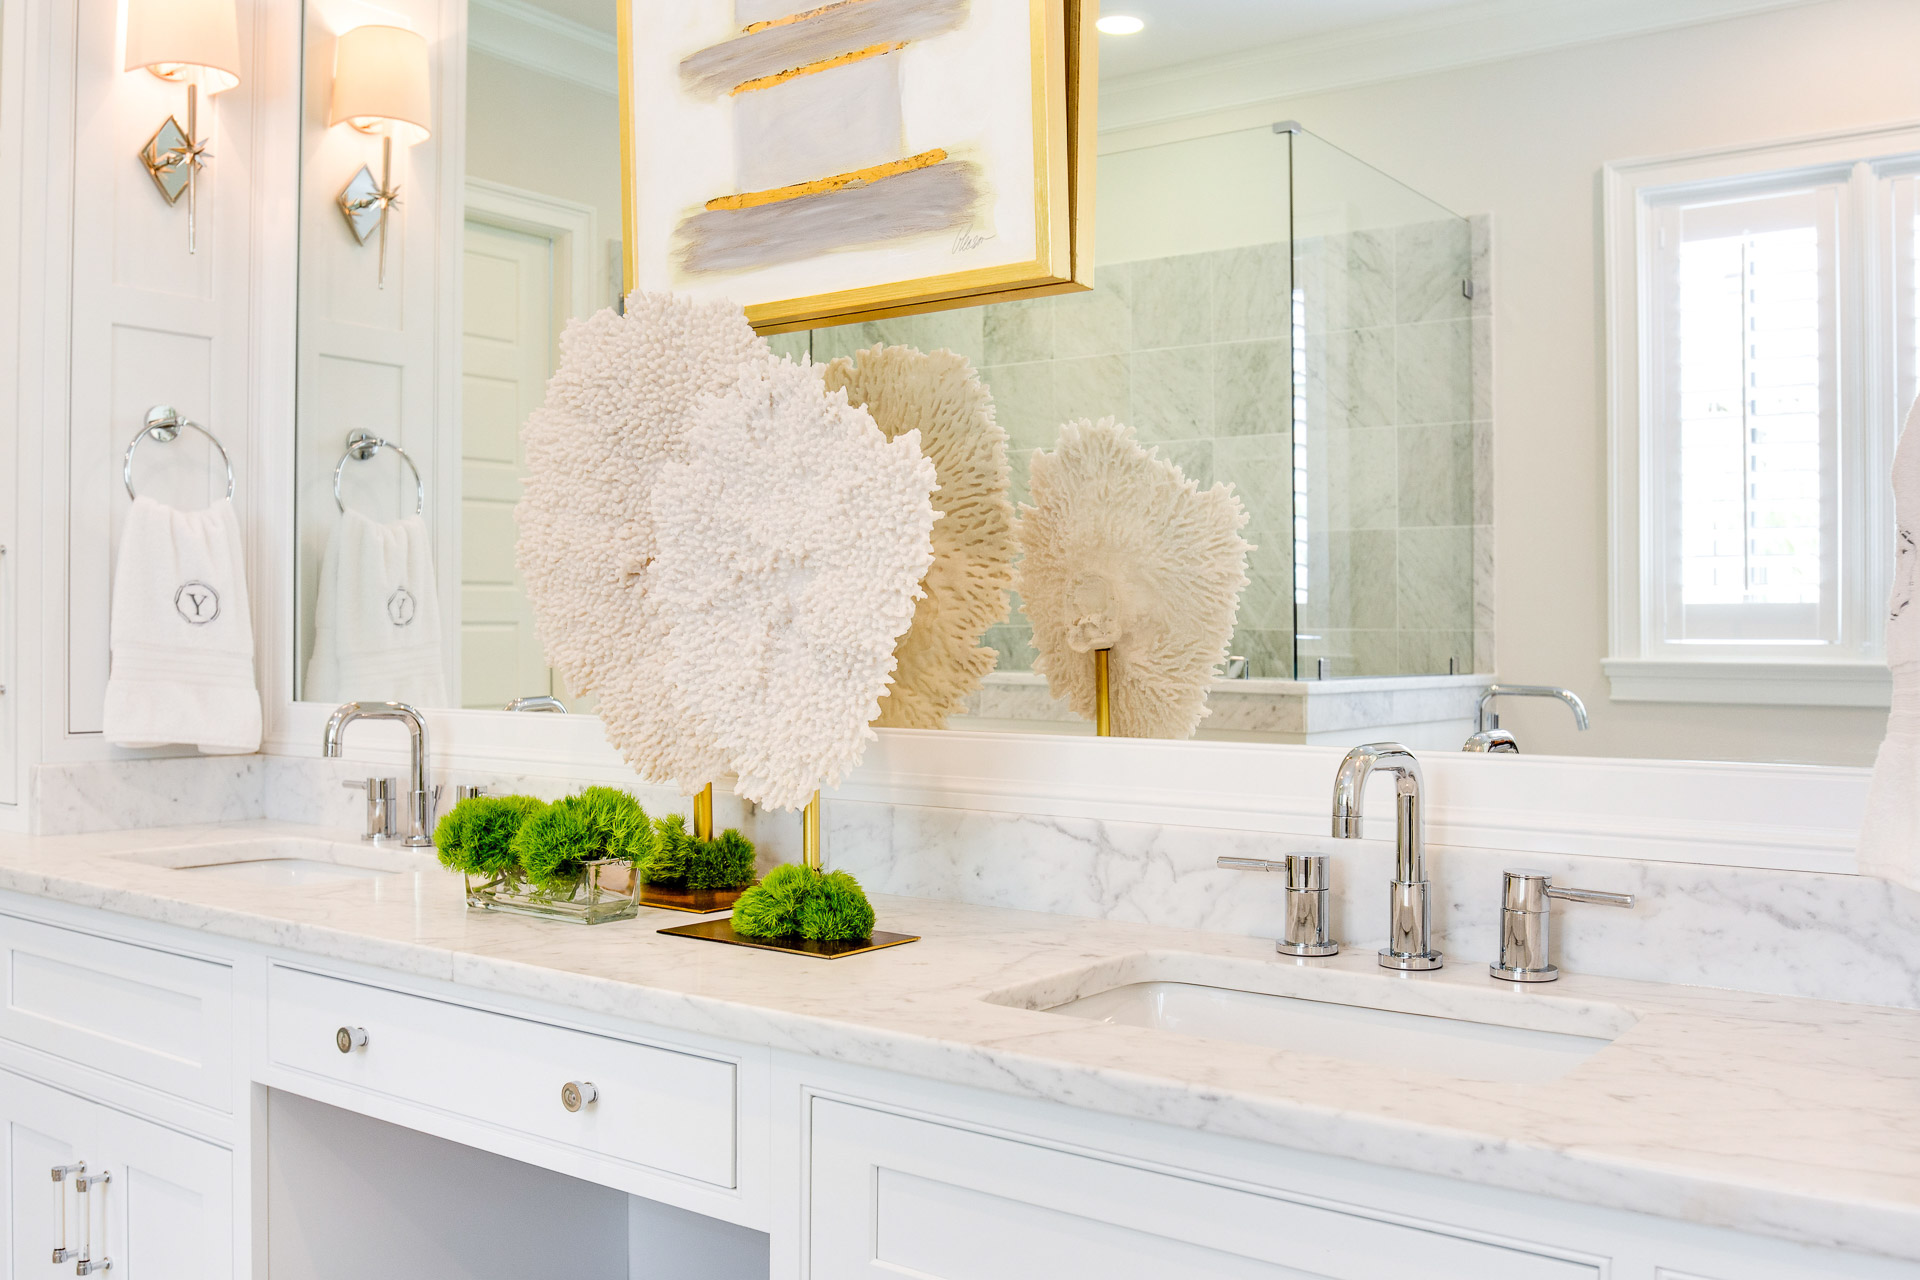 Master Bathroom Sink Styles and Options